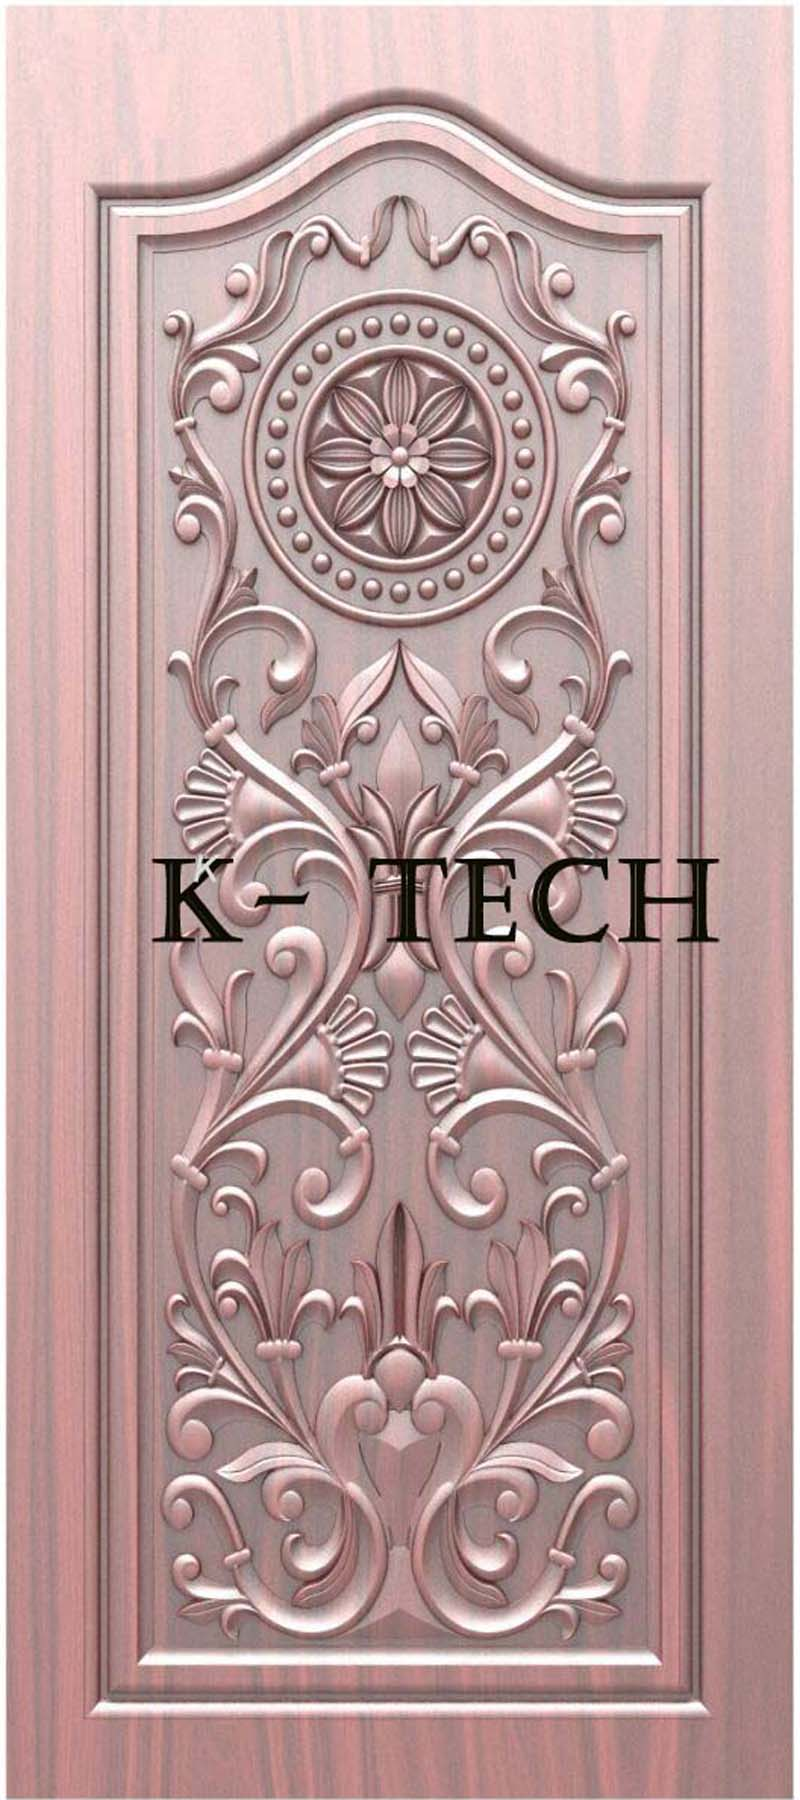 K-TECH CNC Doors Design 56